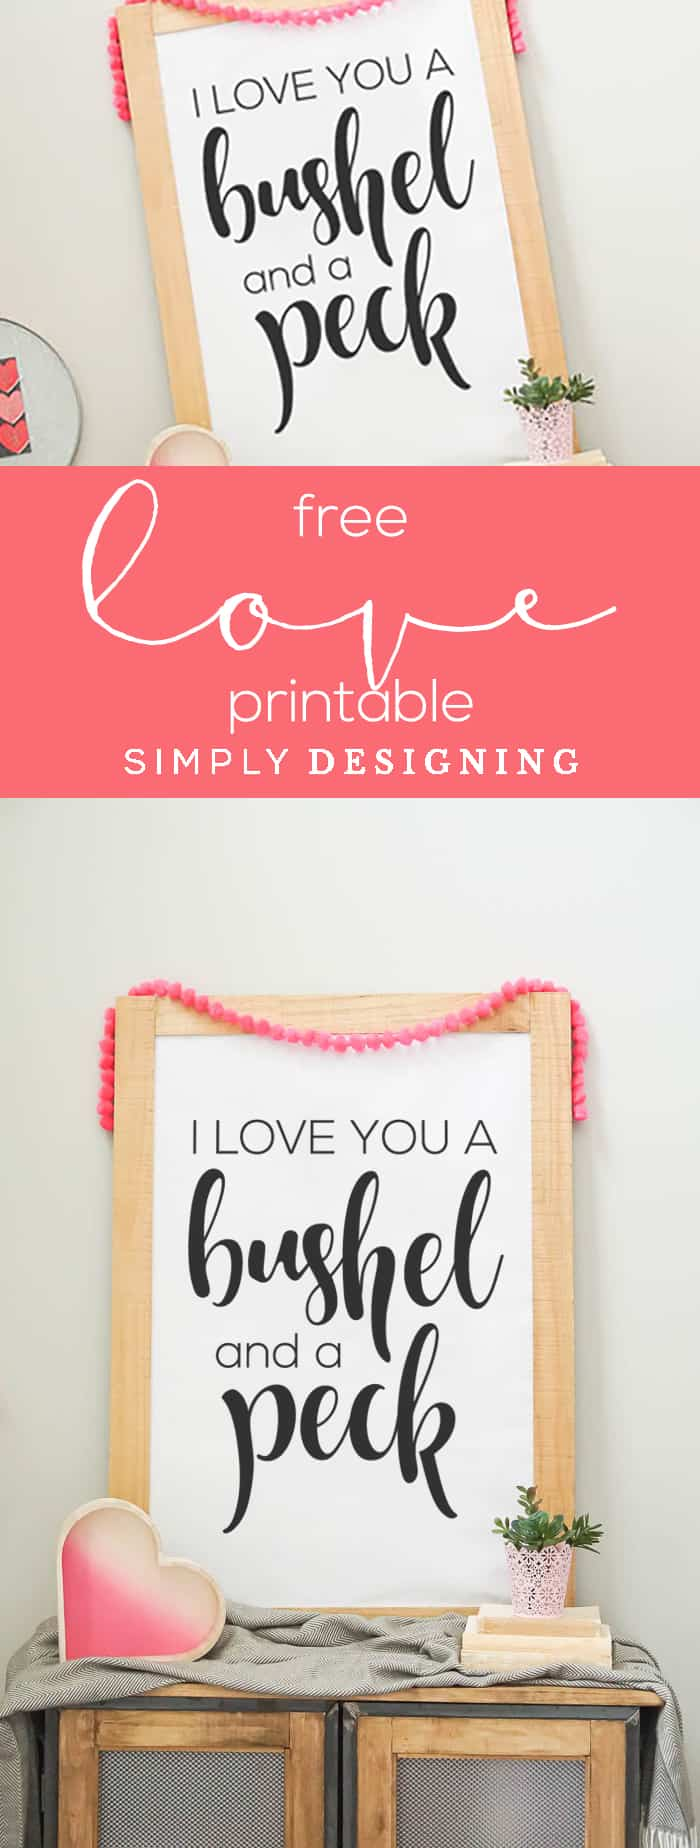 Free Valentines Day Print - Free Master Bedroom Print - Free Love Print - I Love You Printable - I love you a bushel and a peck - Simply Designing